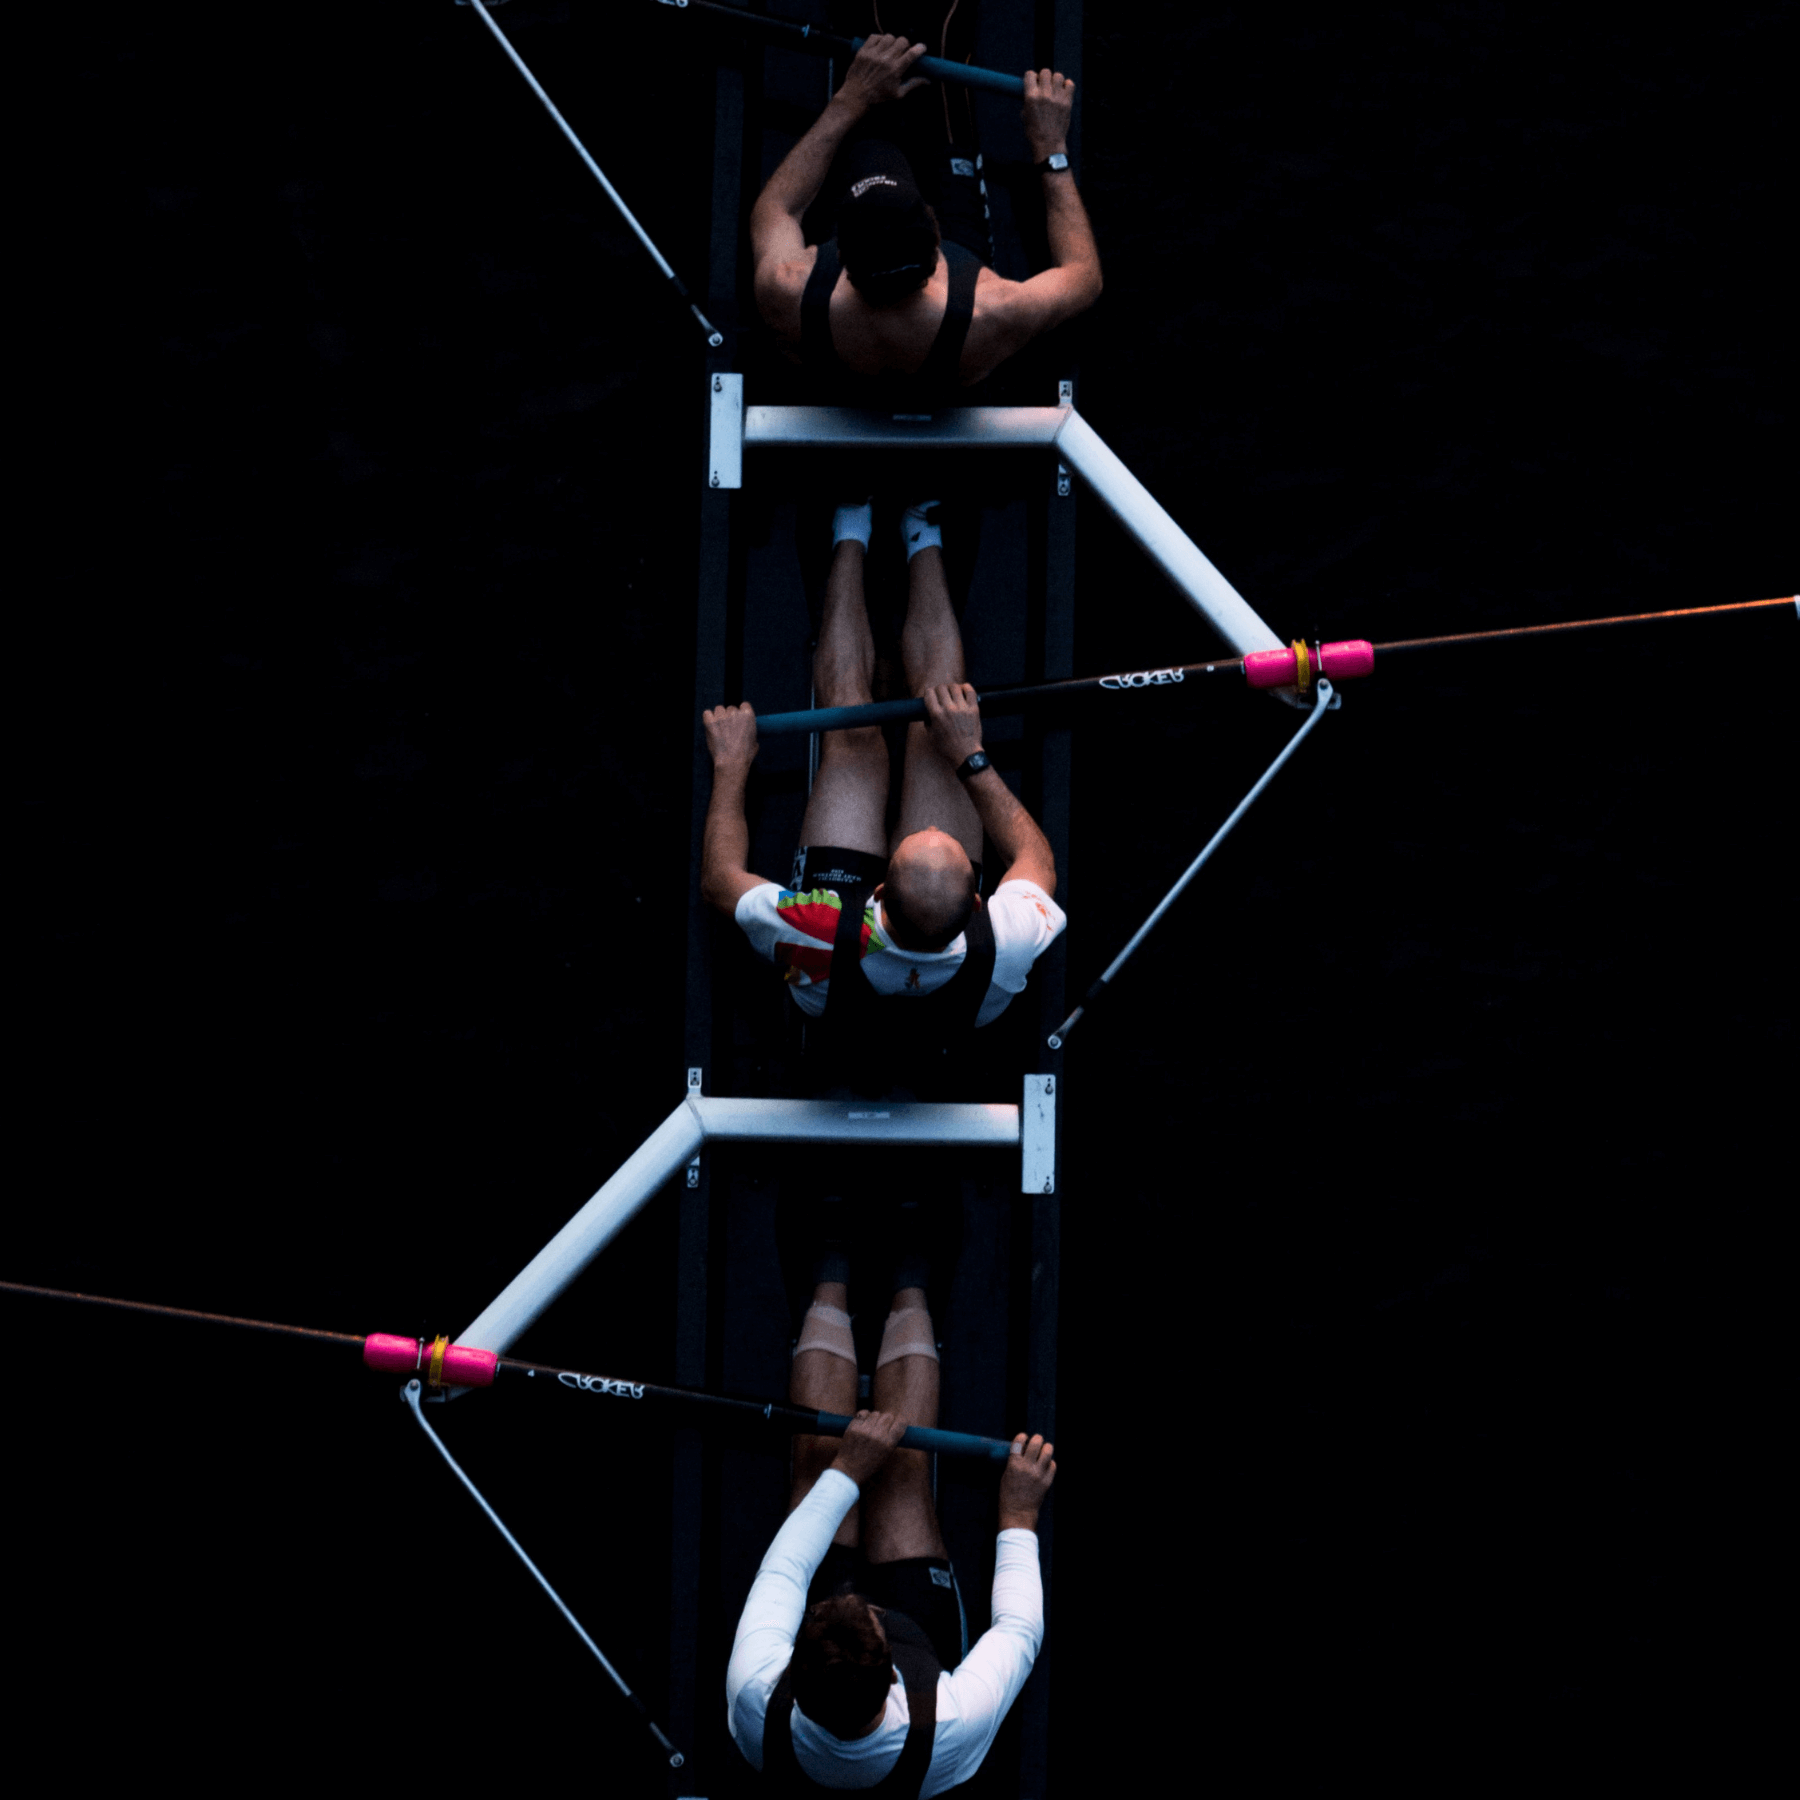 Three people rowing with black background